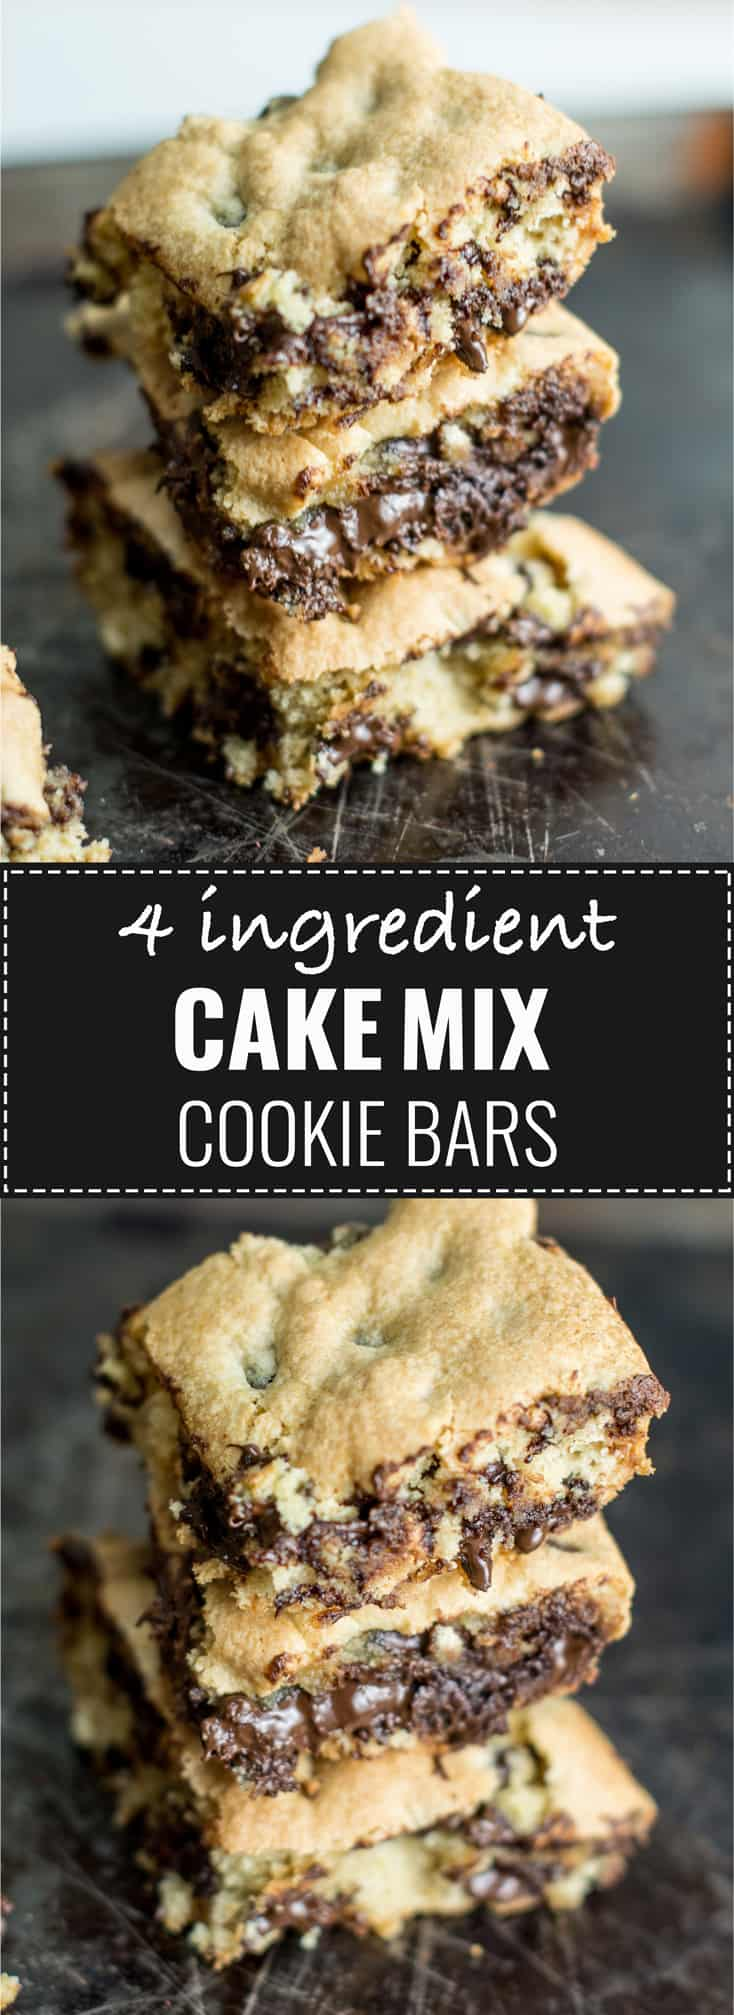 4 ingredient cake mix cookie bars - these are always a hit! #desserts #cakemixcookie #cakemixcookiebars #easydessert